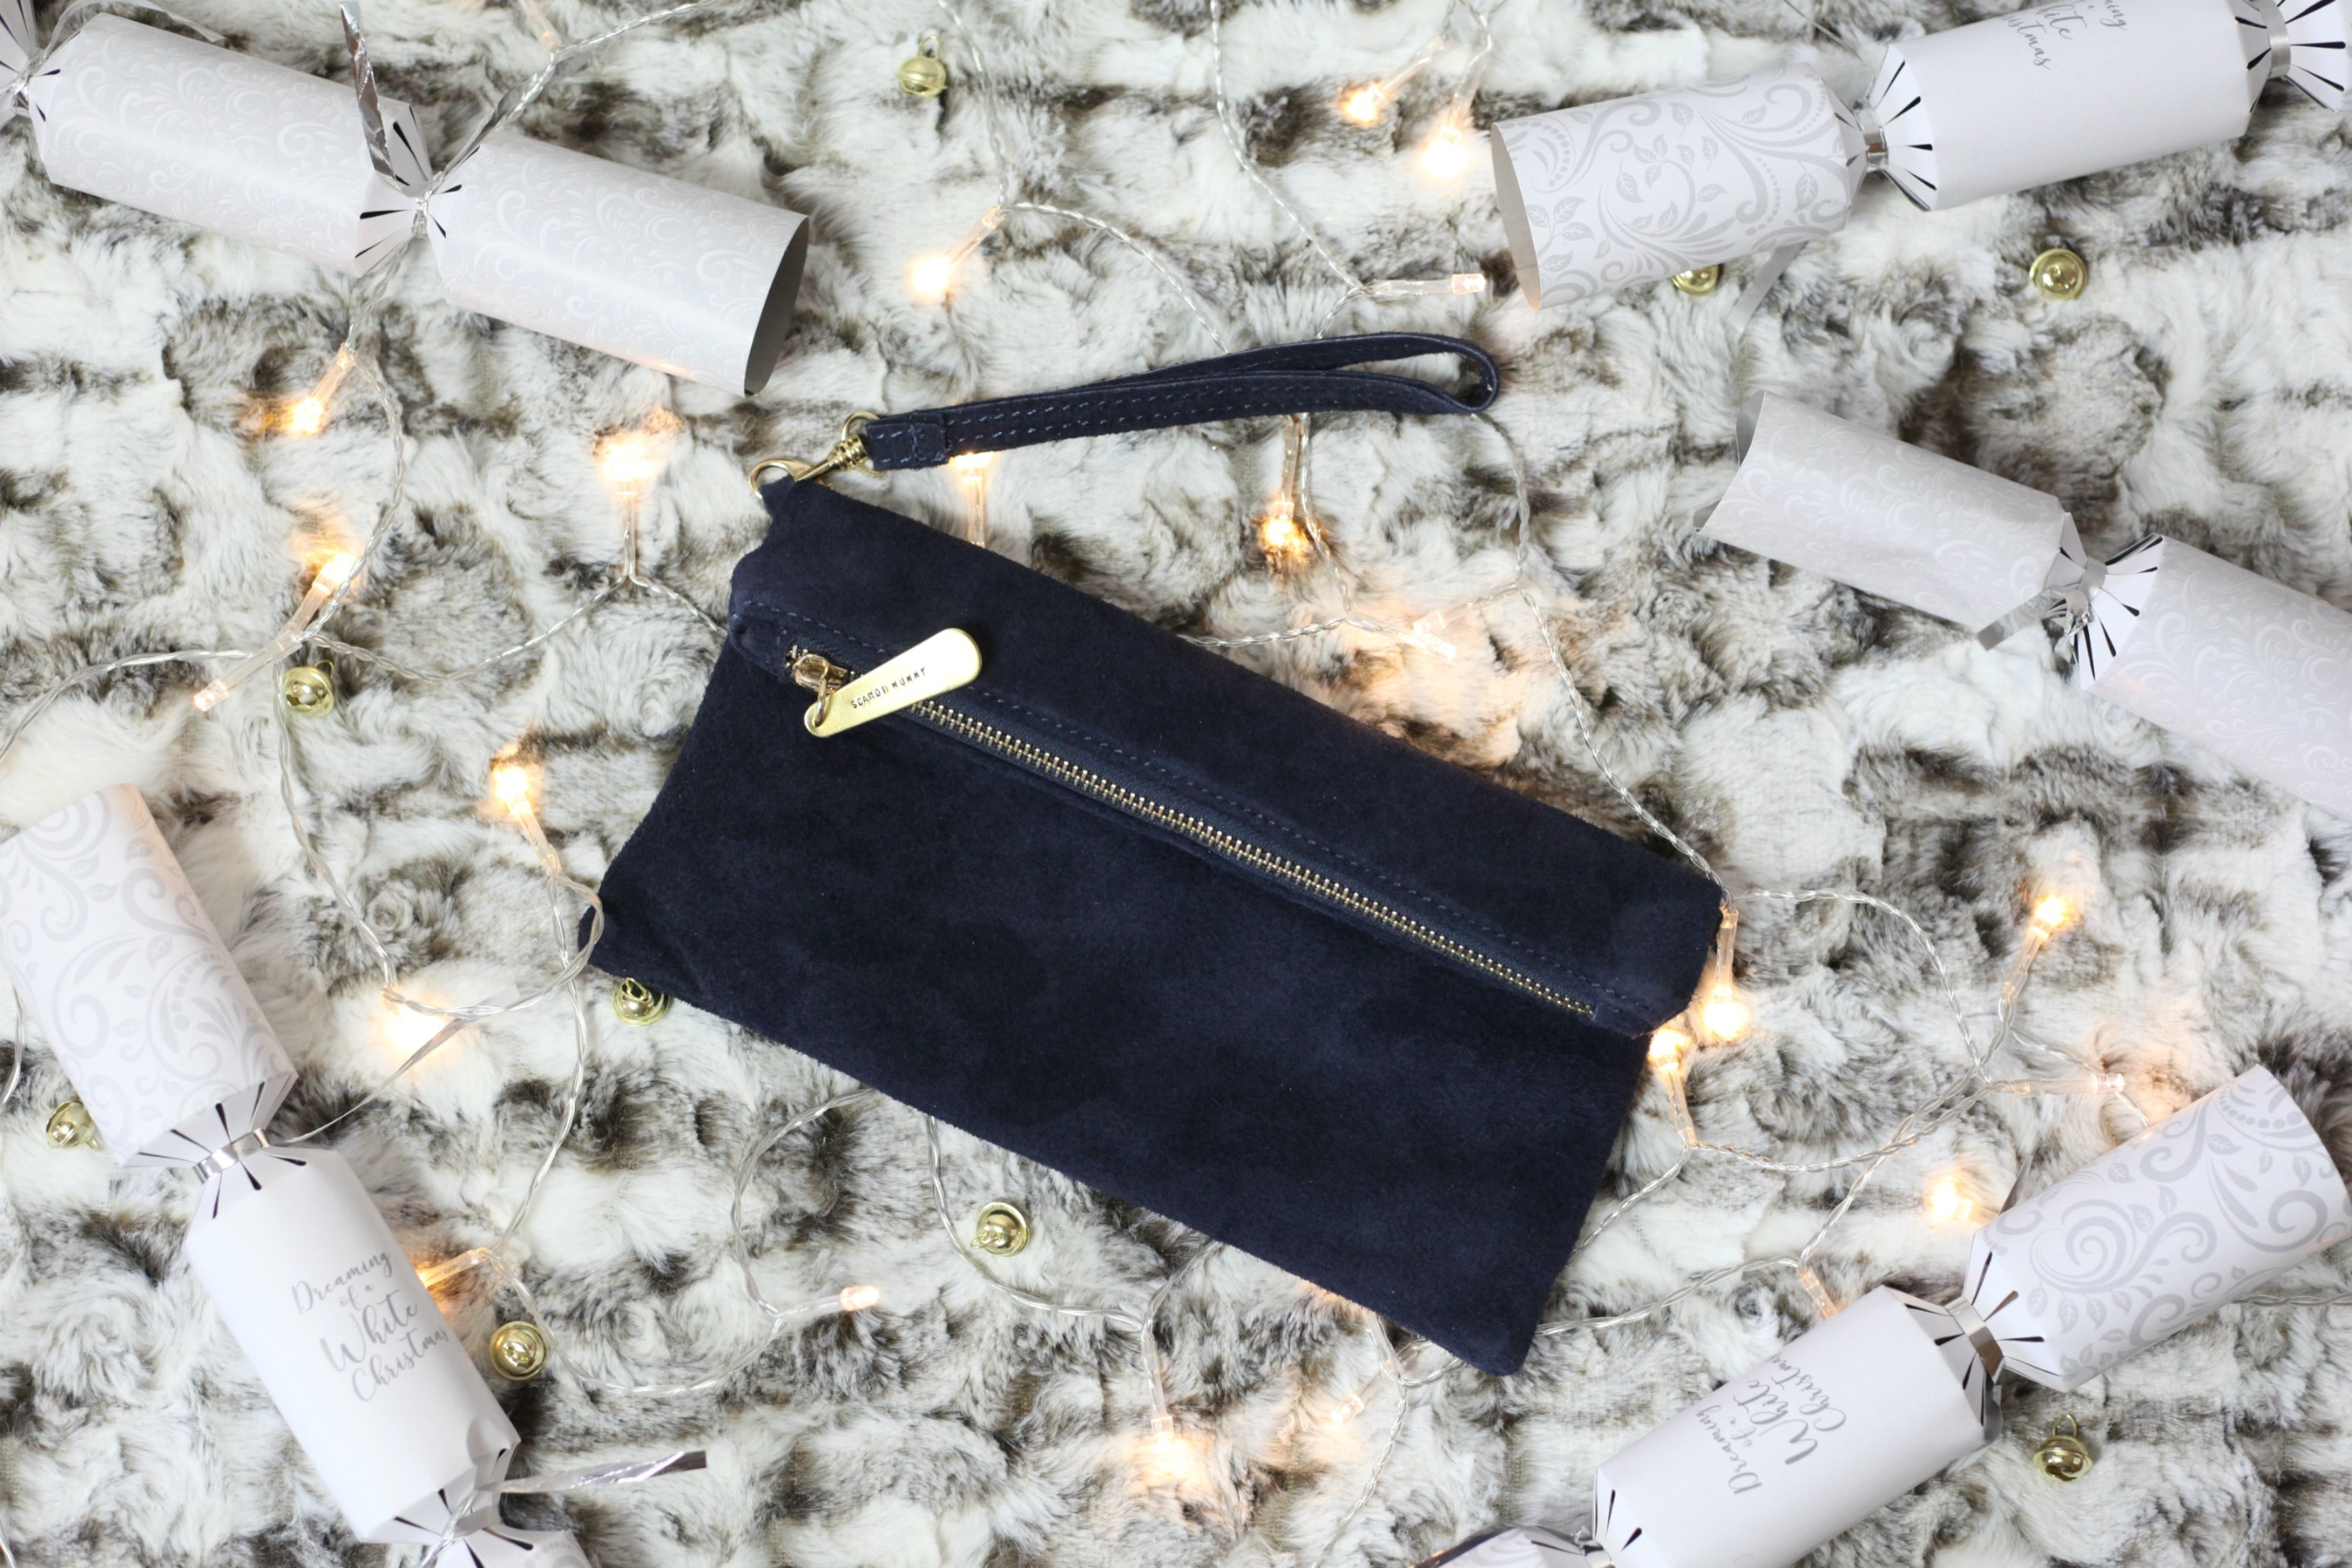 Luxurious Christmas gift ideas from Prezzybox like this personalised suede clutch